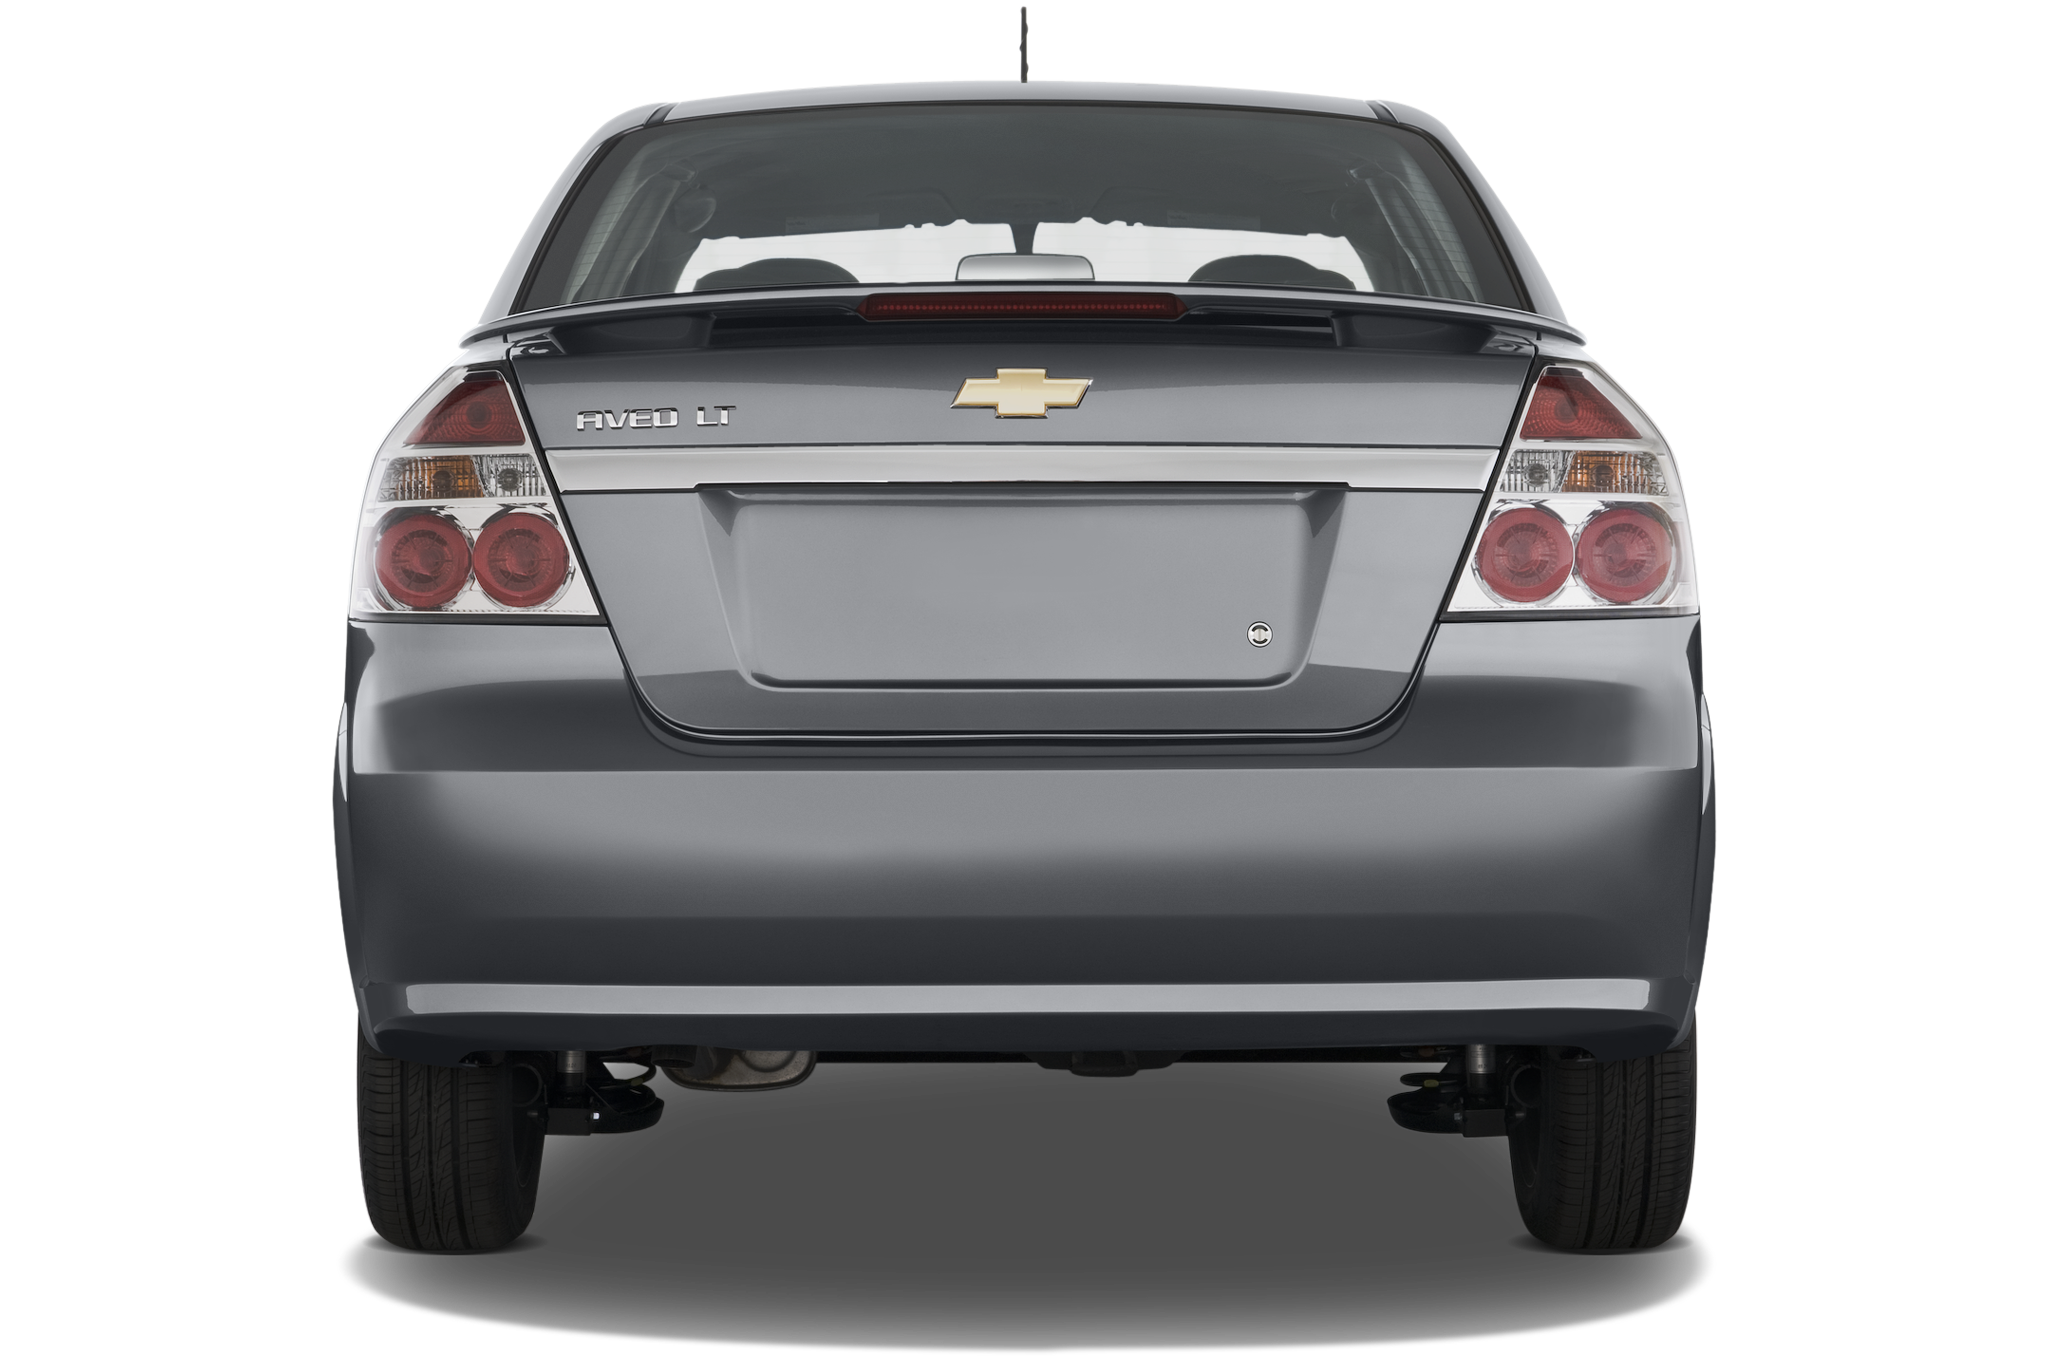 2011-chevrolet-aveo-2lt-sd-sedan-rear-view Great Description About 2011 Chevy Aveo Recalls with Captivating Images Cars Review